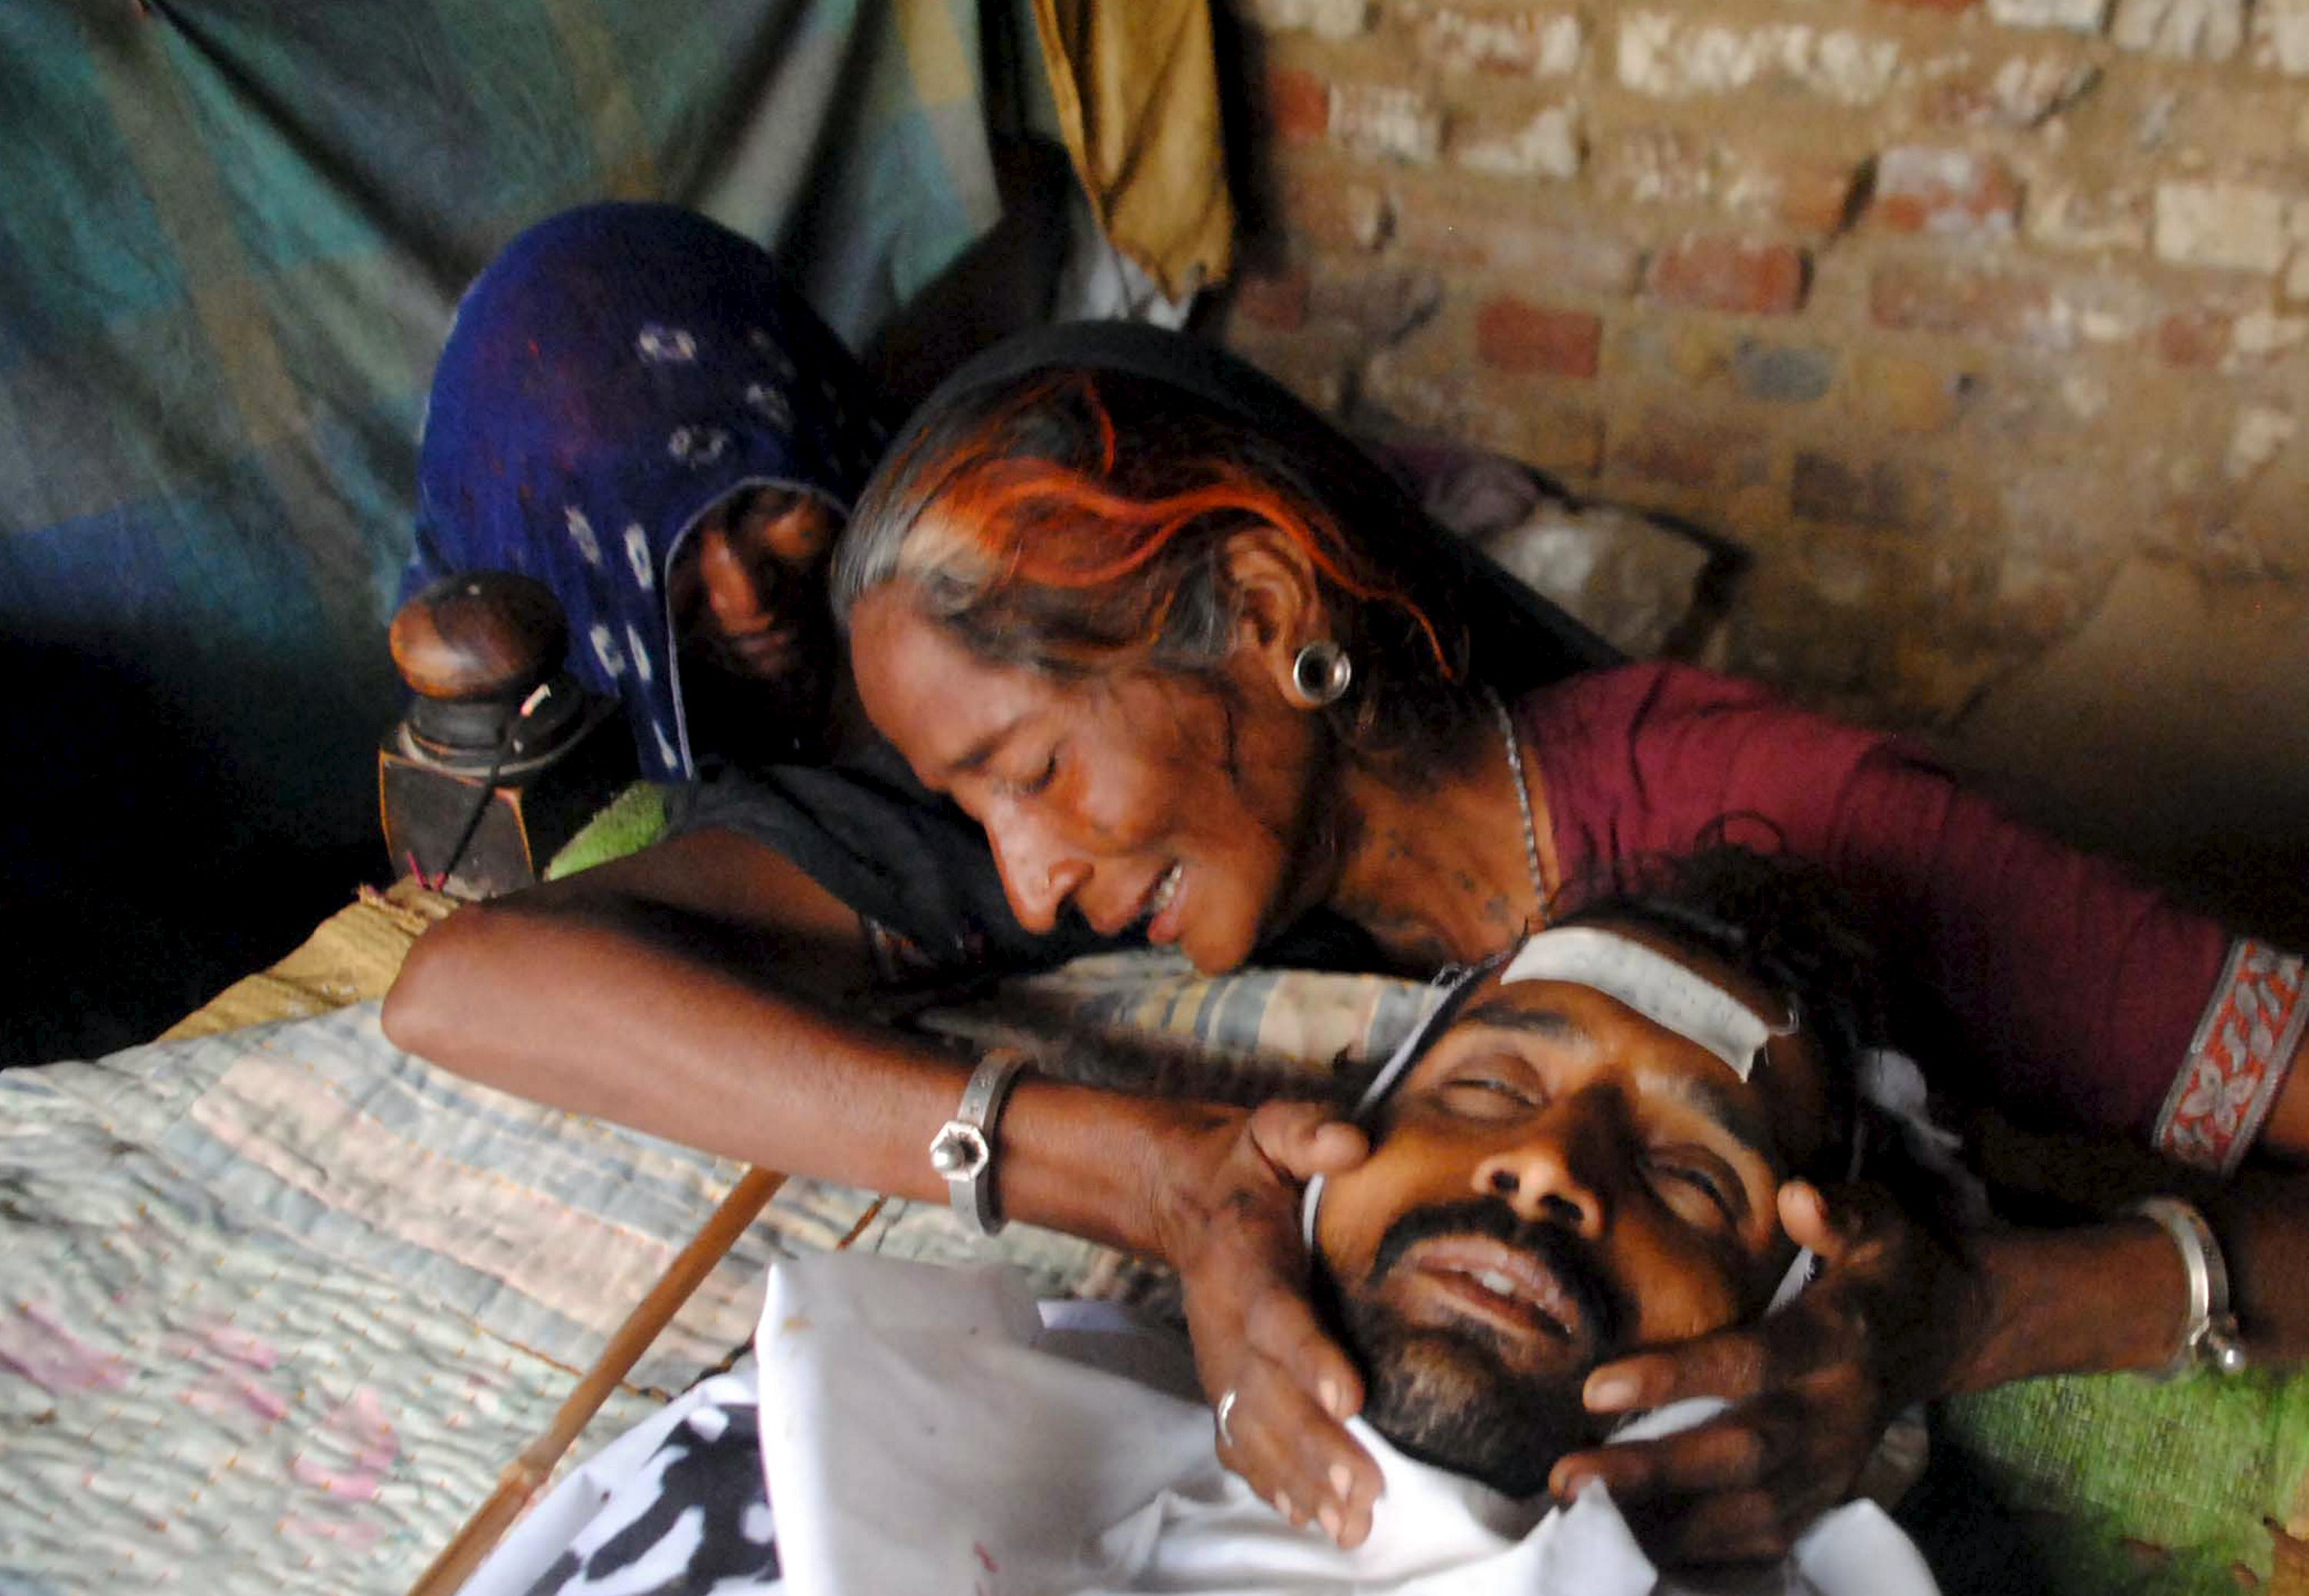 Relatives mourn a man who died after consuming bootleg alcohol in Tando Mohammad Khan in March. PHOTO: REUTERS